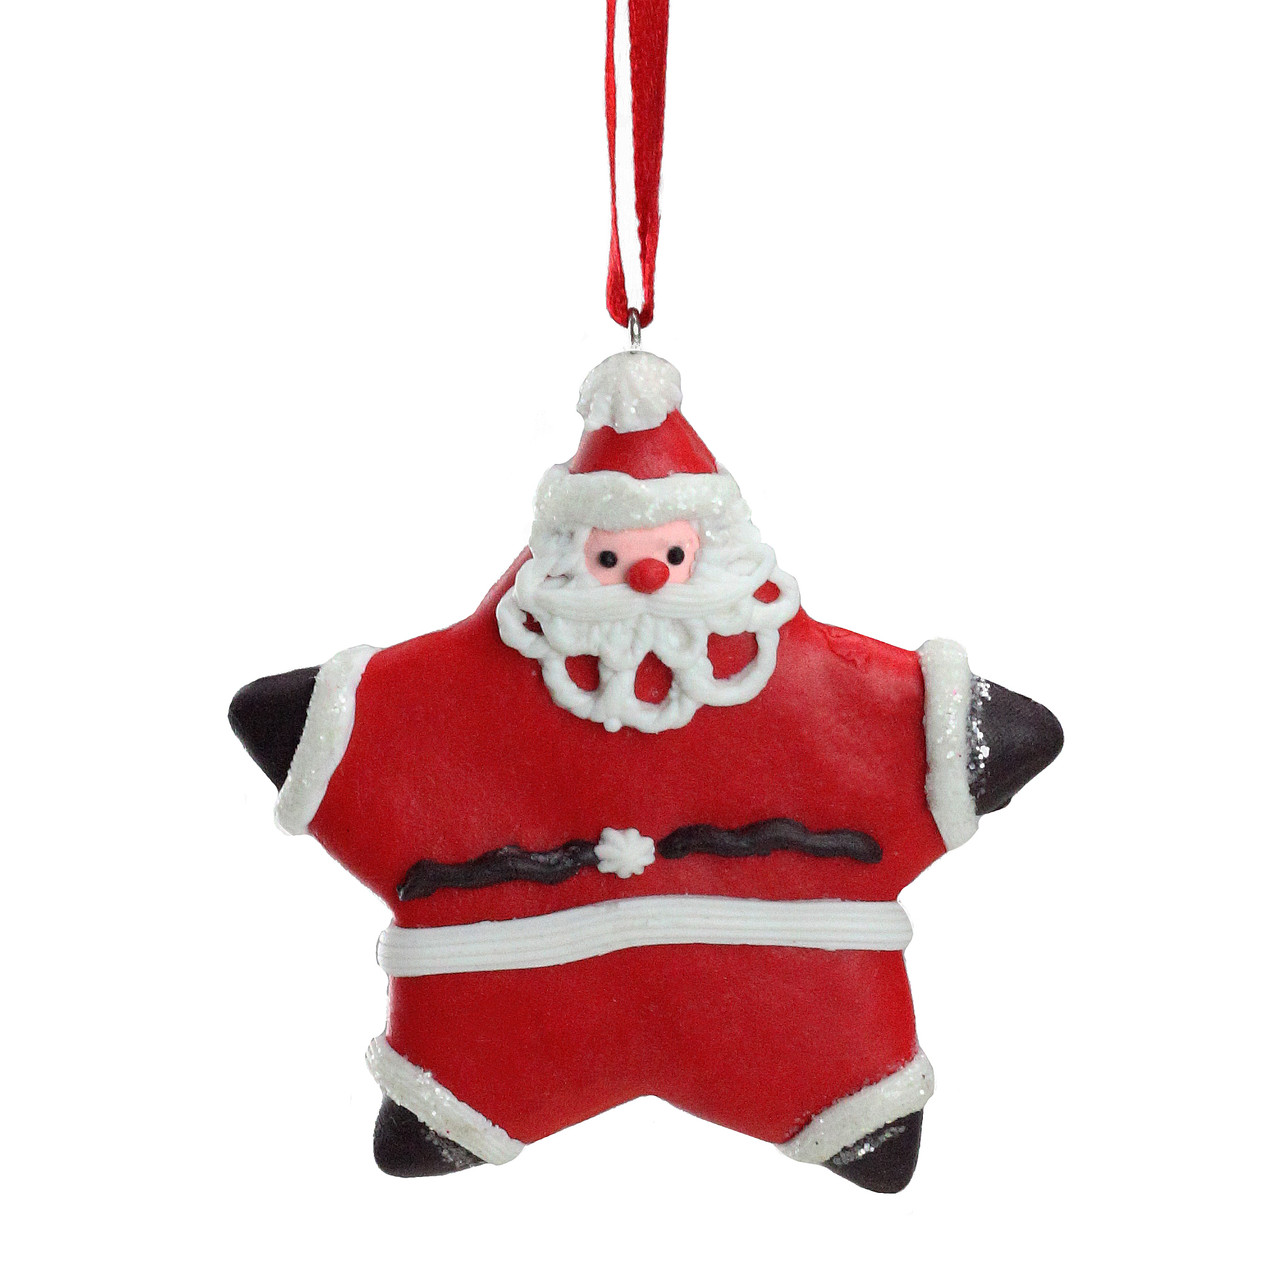 Sweet Memories Frosted Santa Claus Star Cookie Christmas Ornament 16460627